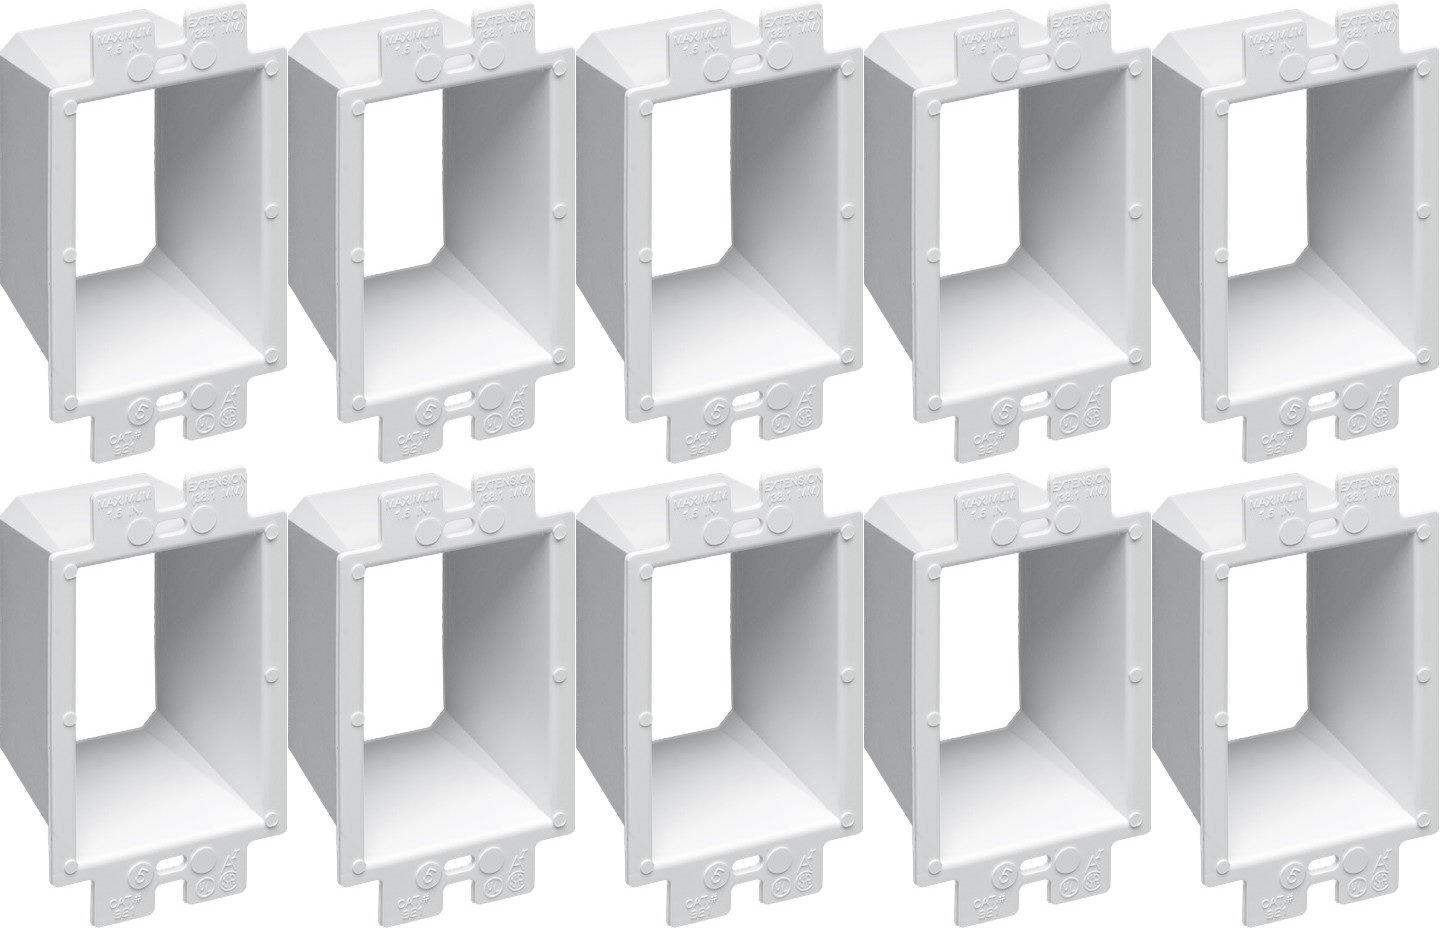 Pack of 10 Arlington BE1 Electrical 1-GANG Box Extenders switch outlet +4 MISCUT